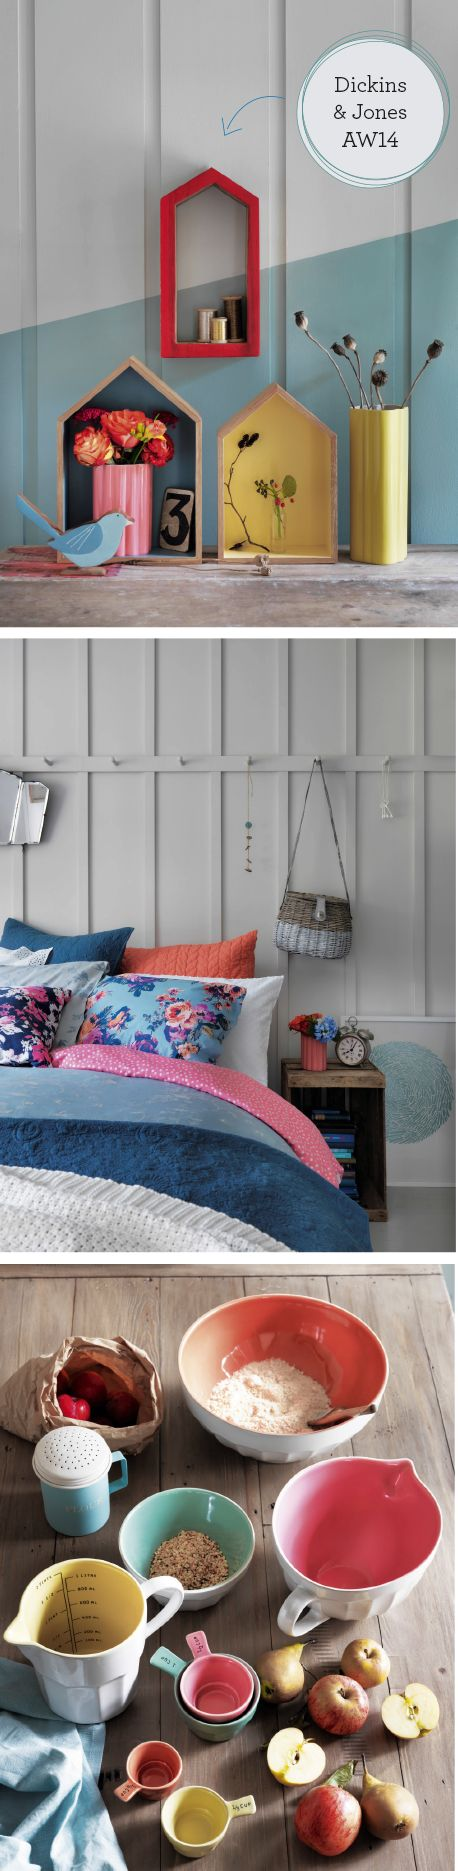 Dickins and Jones, House of Fraser, Homeware, Home Shopping Spy, Ideal Home, AW14, Autumn Winter trends....like the shaker style rails for above a bed